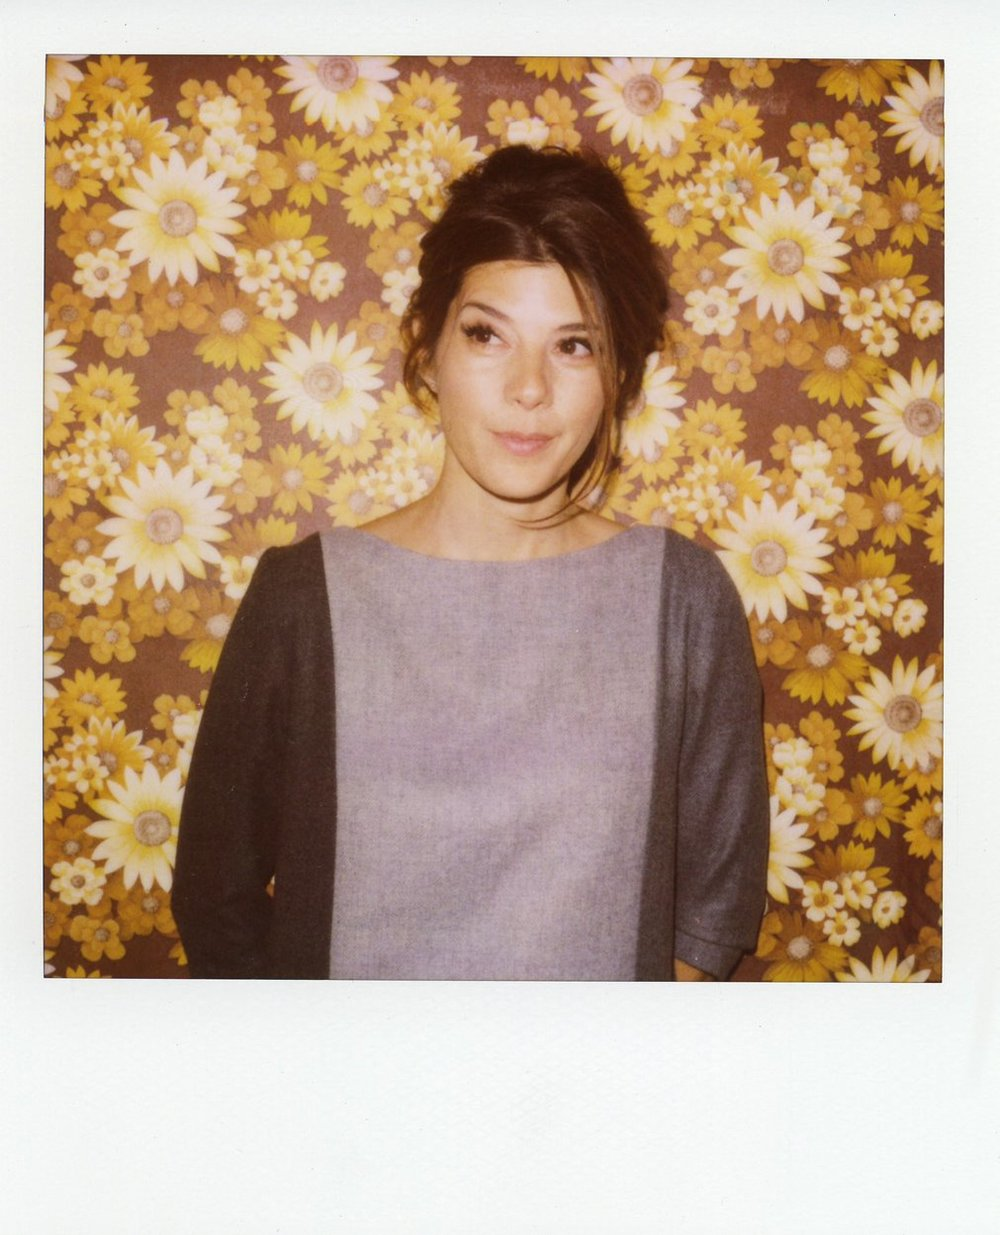 Got a girl crush on: Marisa Tomei in Boy. by Band of Outsiders Marisa Tomei models Boy by Band of Outsiders. Scott Sternberg and I seem to have the same girl crushes. You and me both, icanmakewaffles!…all right it's more of a crush on Boy. by Band of Outsiders, which is cheating because it's actually designed by a guy–the dapper Scott Sternberg (what I don't have a crush on, though, are their prices. Oh, lawdy lawdy lawdy!). But we can let these things slip once in a while, right? I've loved their picks for models so far: Kirsten Dunst, Sarah Silverman and now Marisa Tomei. Scott sure knows how to sell to women. More adorable polaroids of Marisa strutting her stuff here. (via icanmakewaffles)